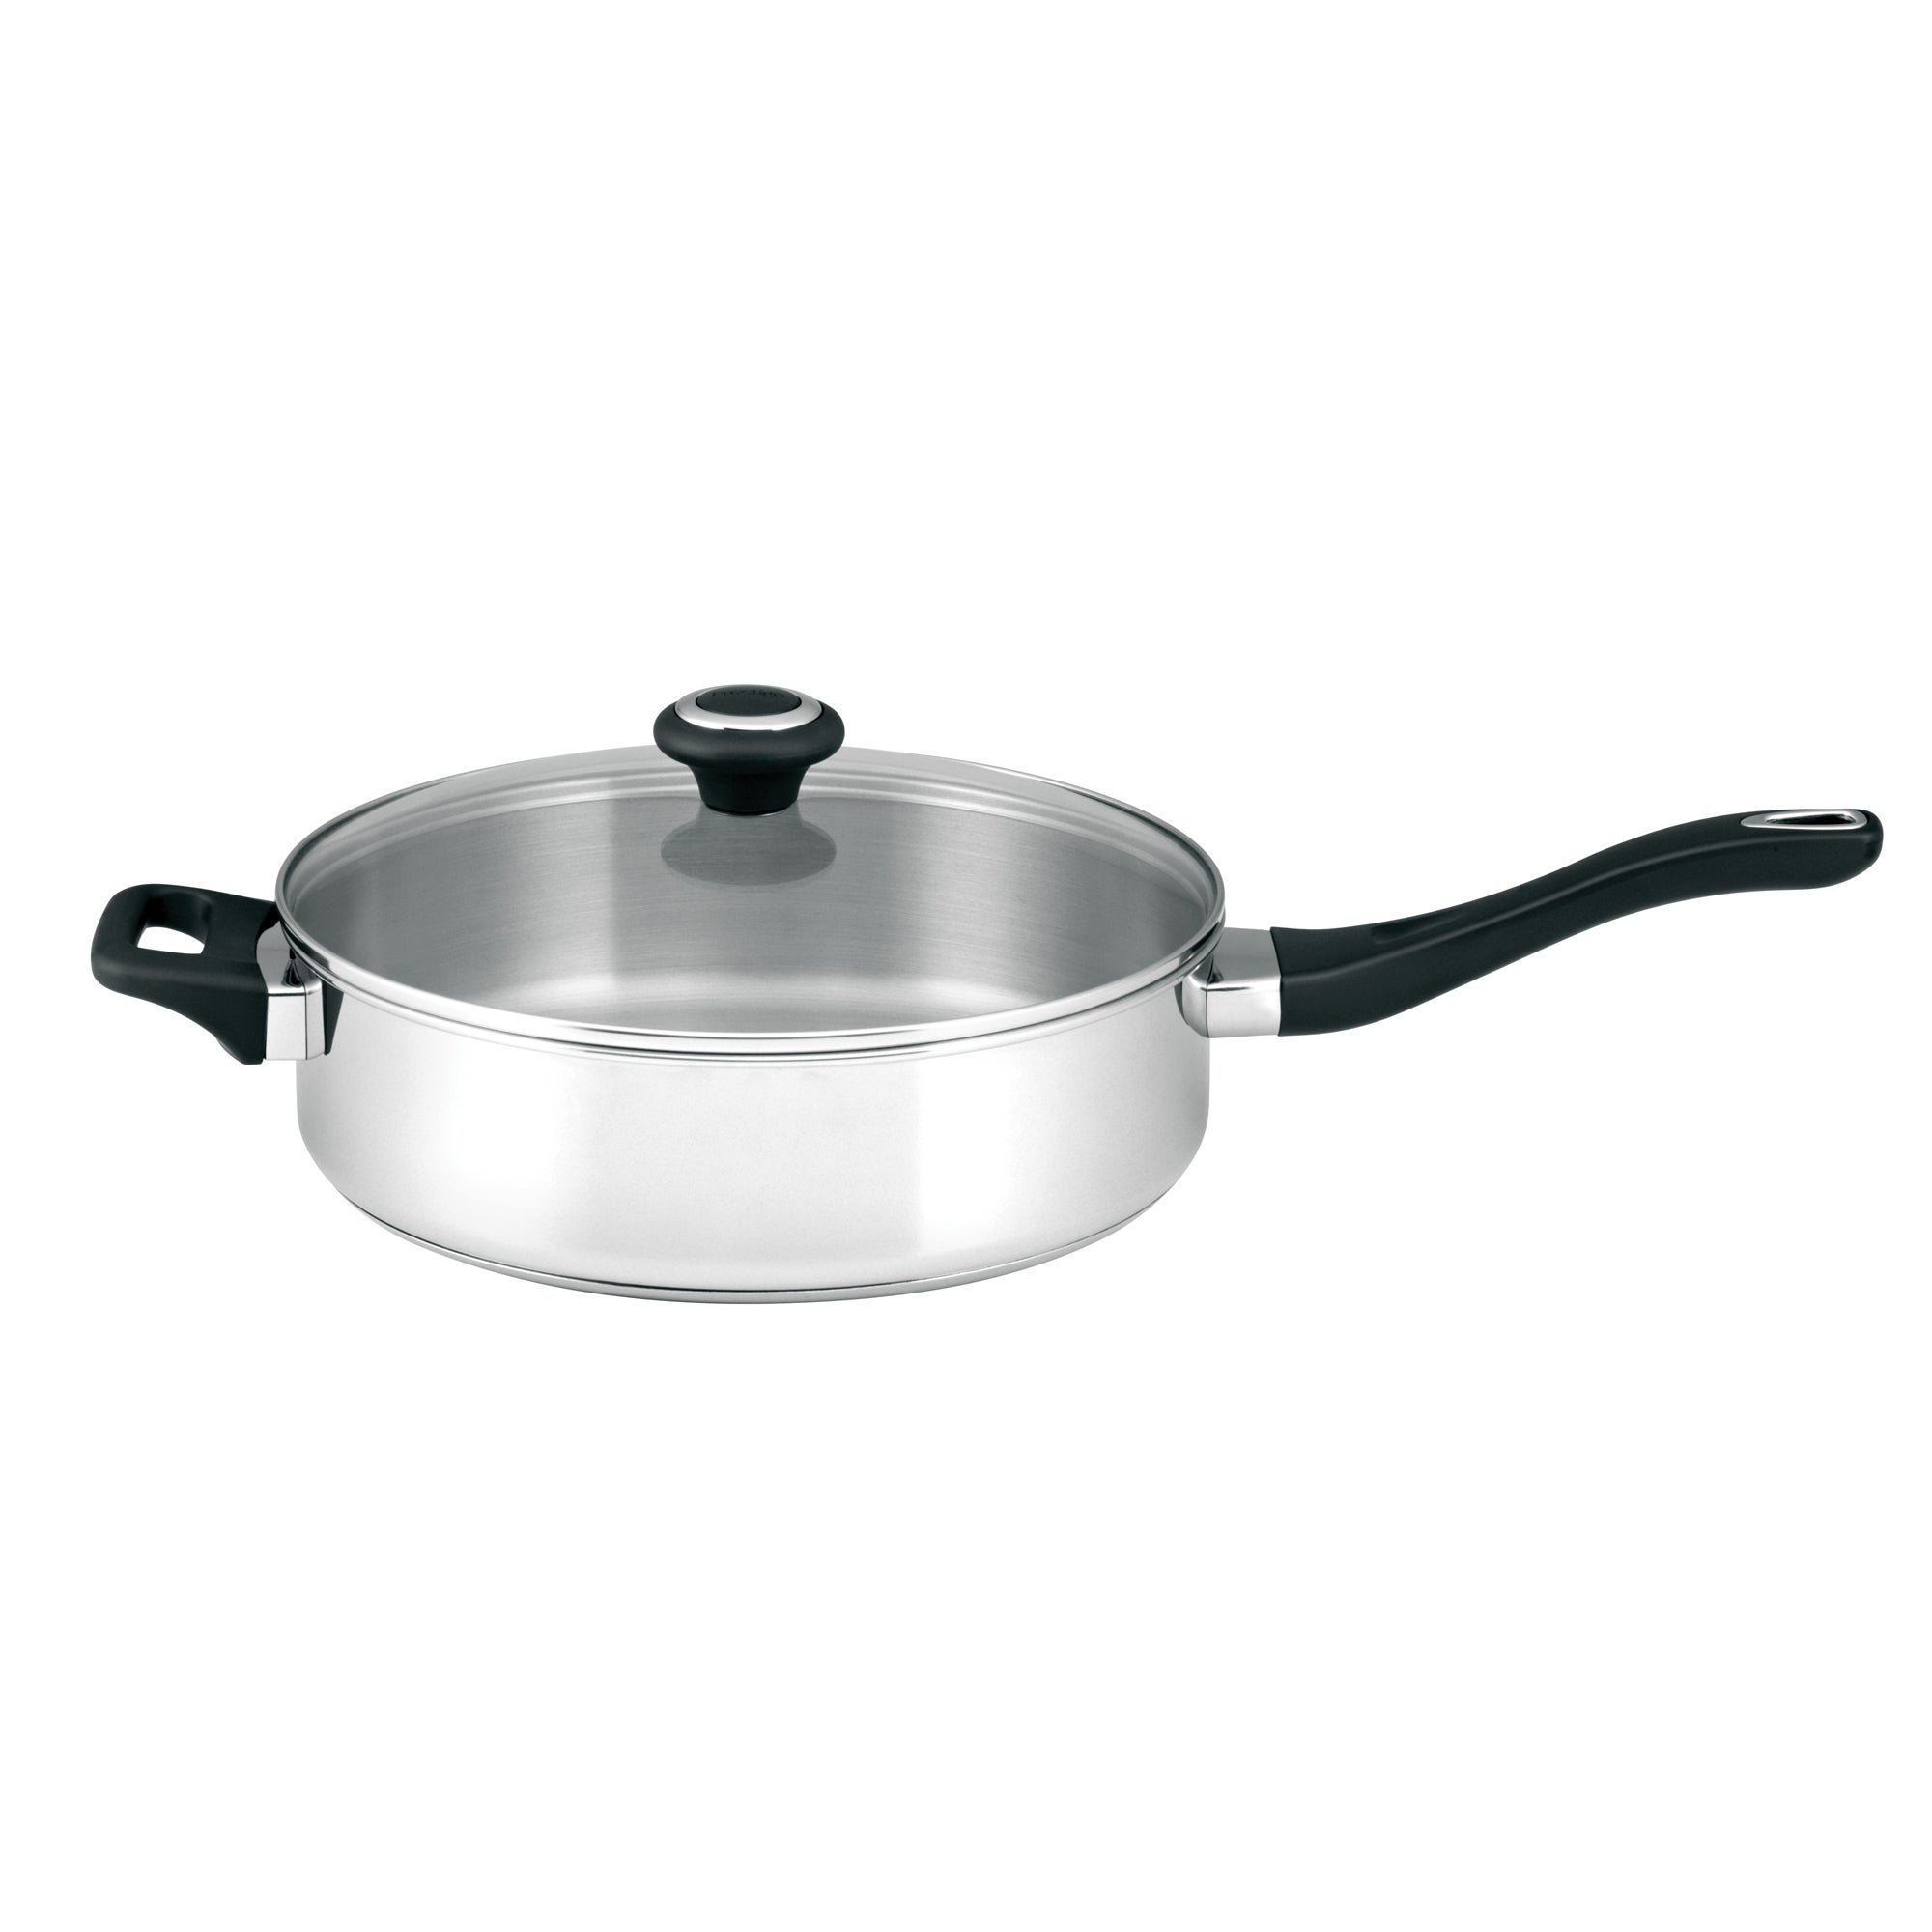 Large Prestige Stainless Steel Covered Saute Pan